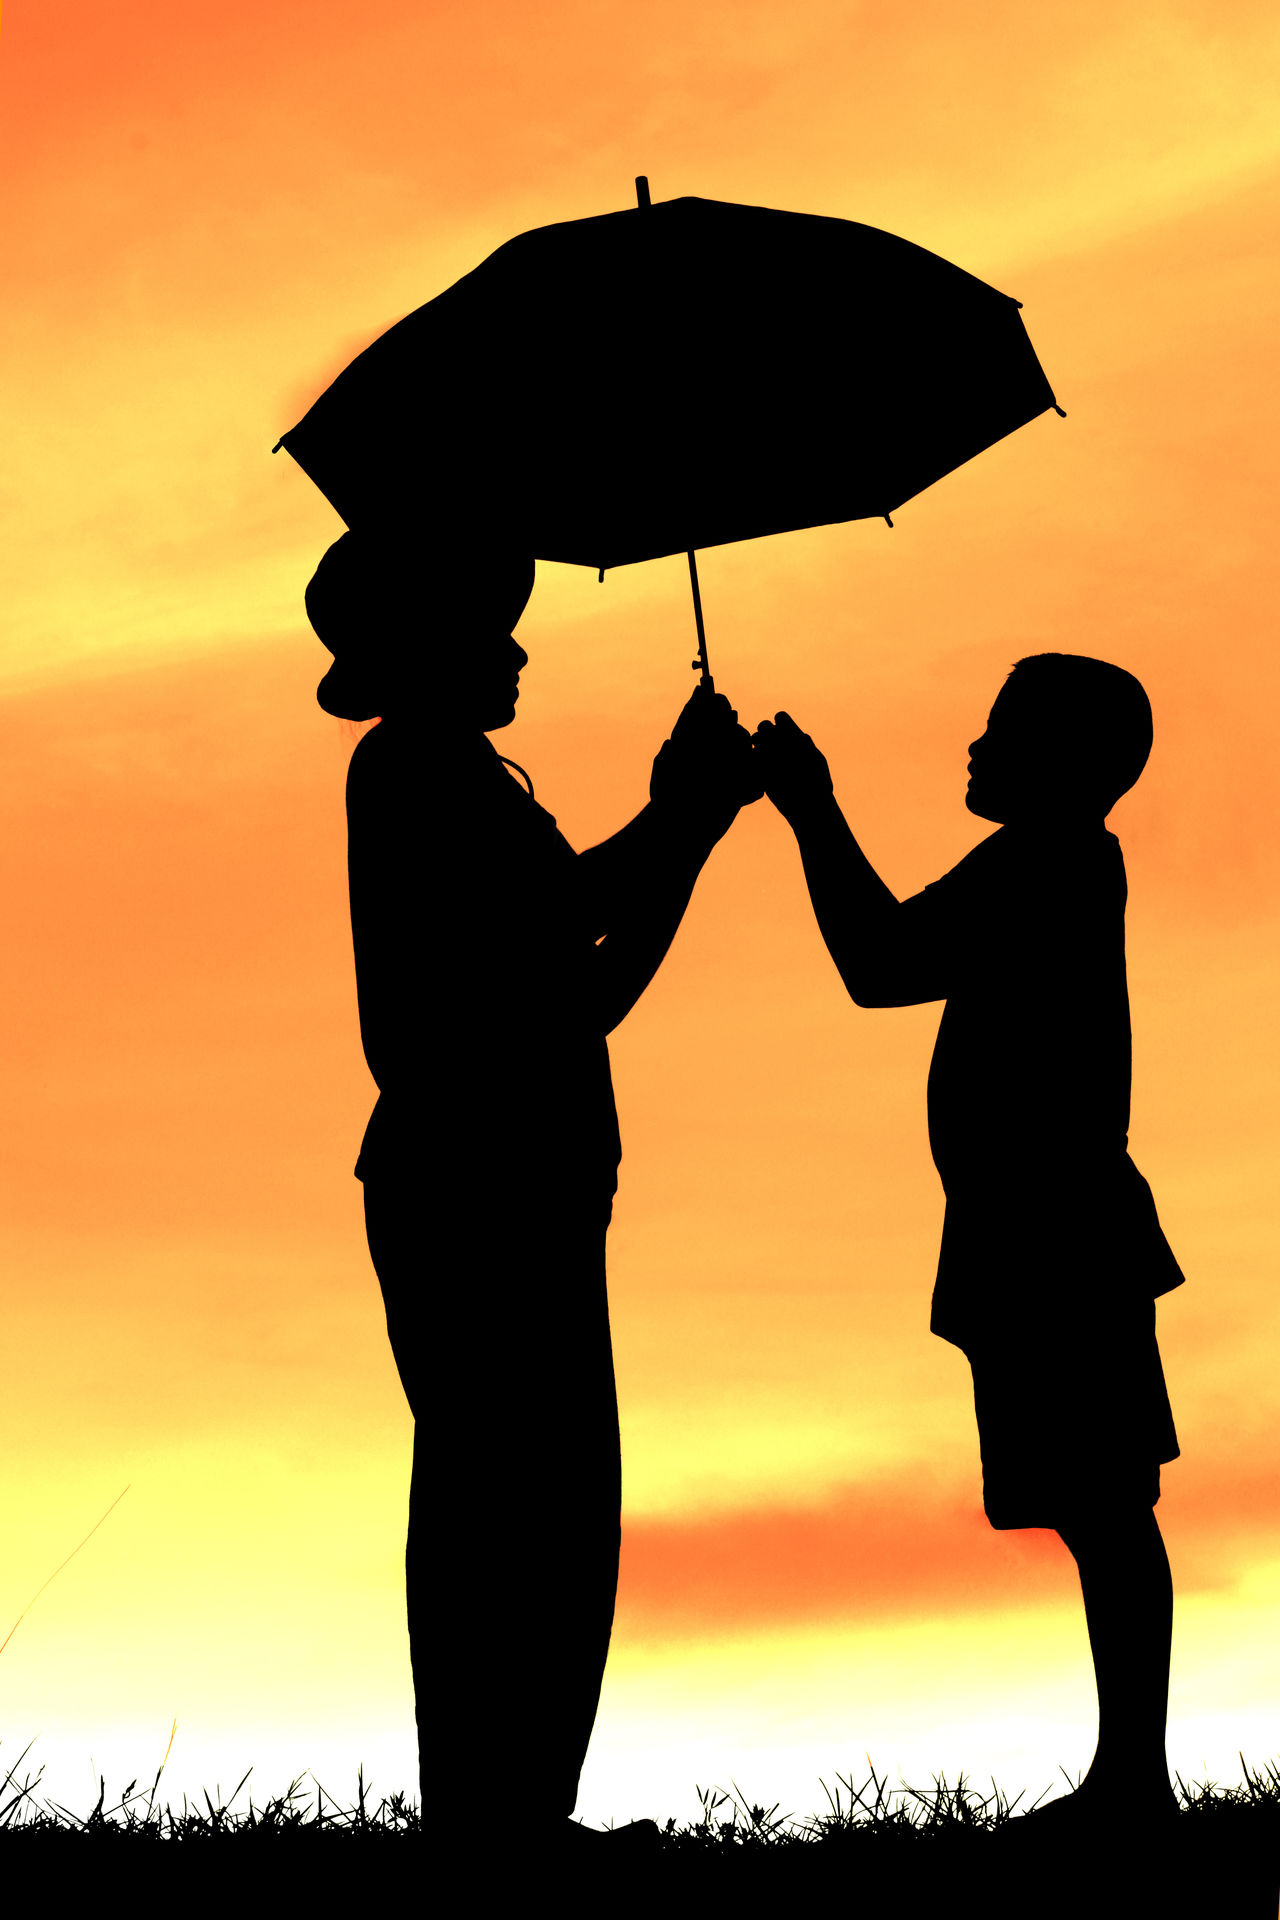 Clear Sky Beuty Children Siluette Mom Kid Asian  Family Family Time Unbrella Sunset Happy Outdoors Travel